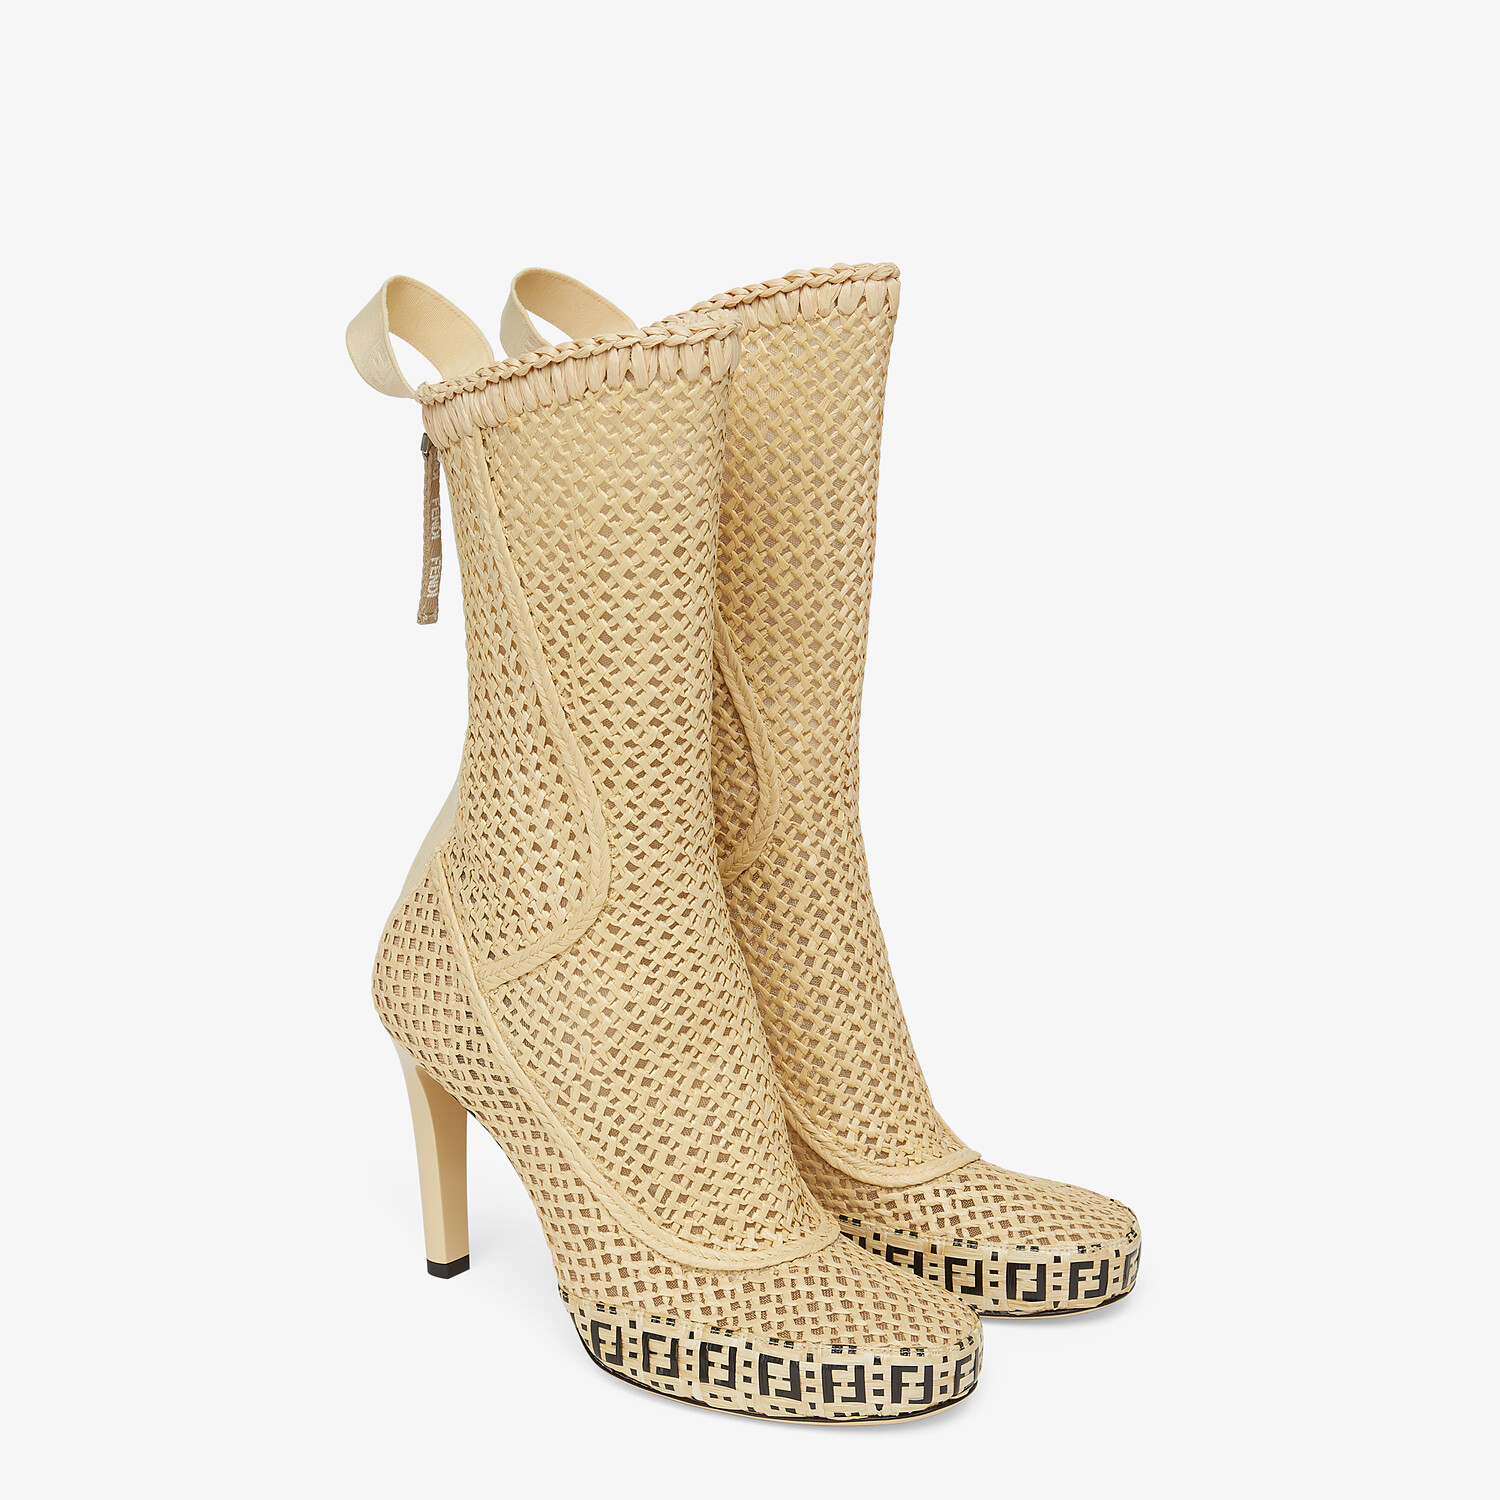 FENDI FENDI REFLECTIONS ANKLE BOOTS - Beige raffia booties - view 4 detail